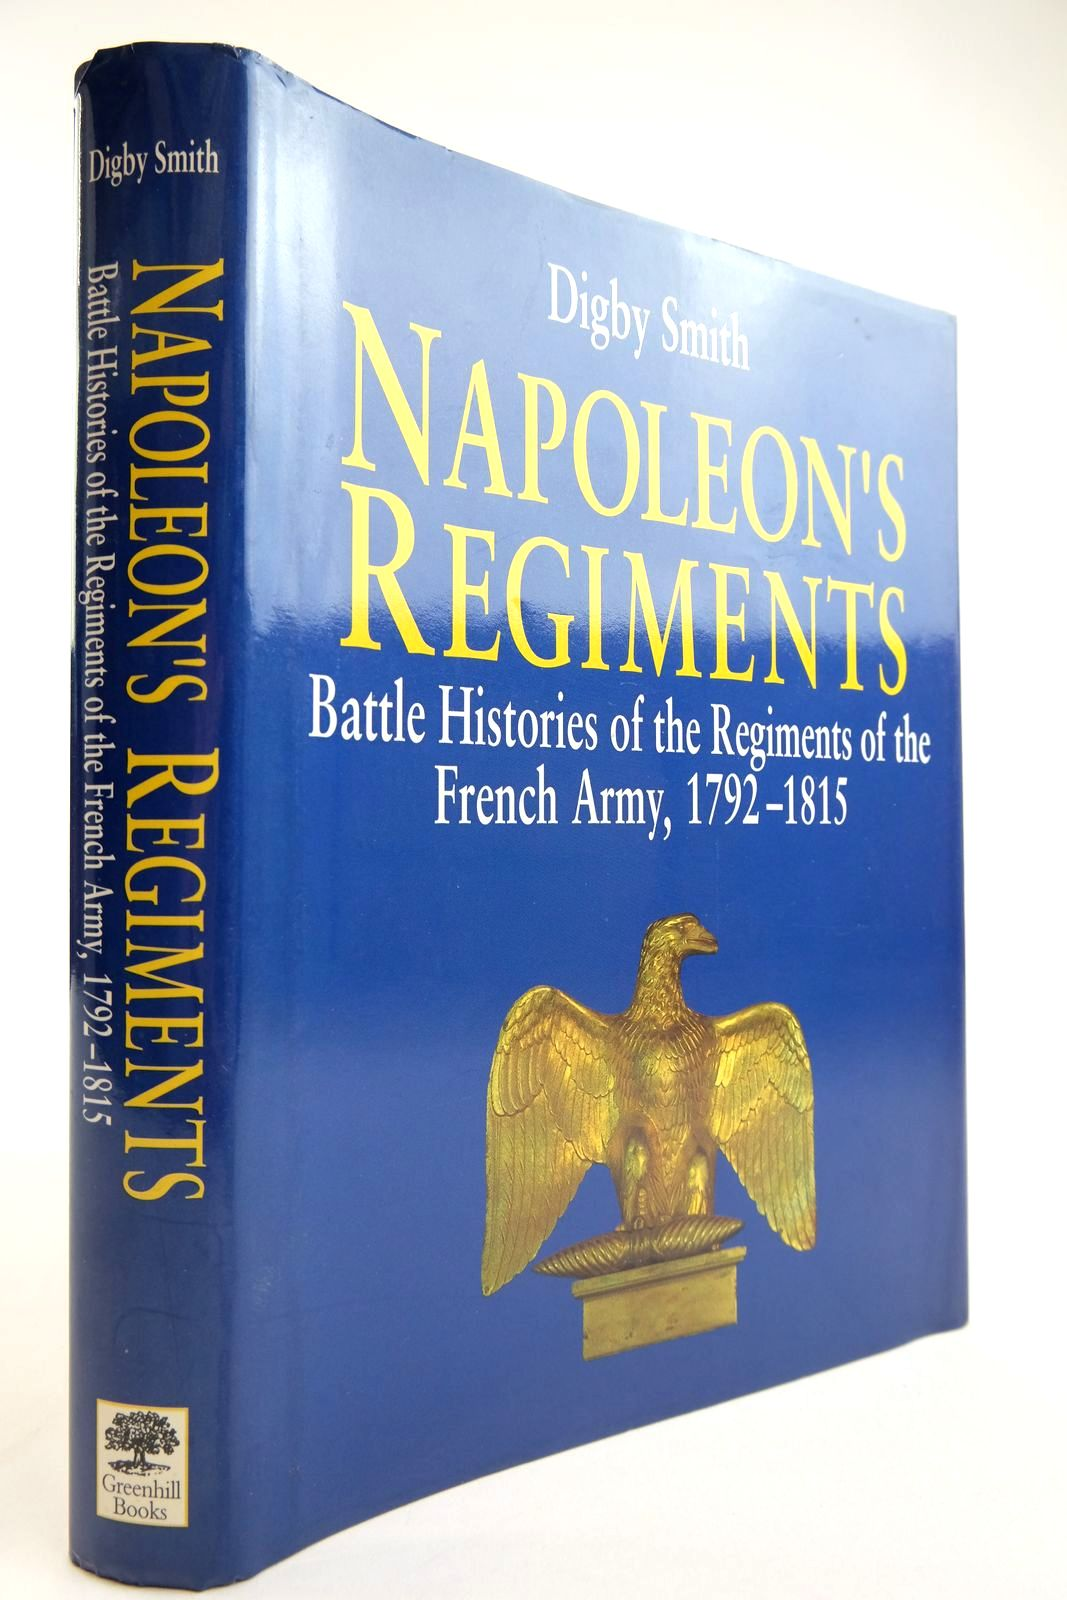 Photo of NAPOLEON'S REGIMENTS written by Smith, Digby published by Greenhill Books (STOCK CODE: 2134163)  for sale by Stella & Rose's Books